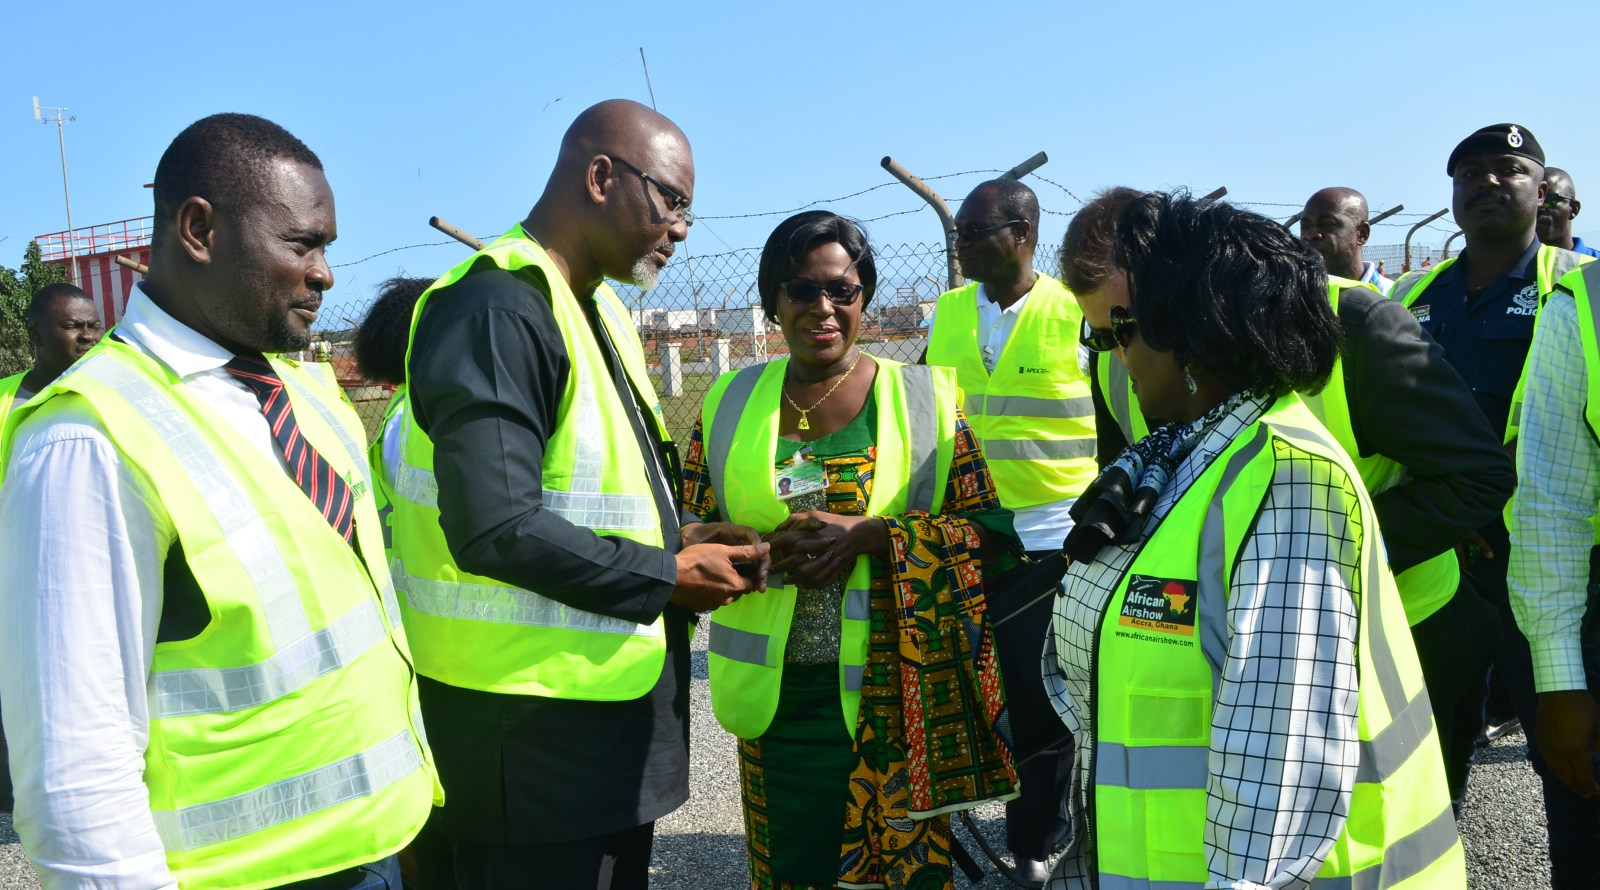 Ghana: Stakeholders Tour Site For African Air Expo